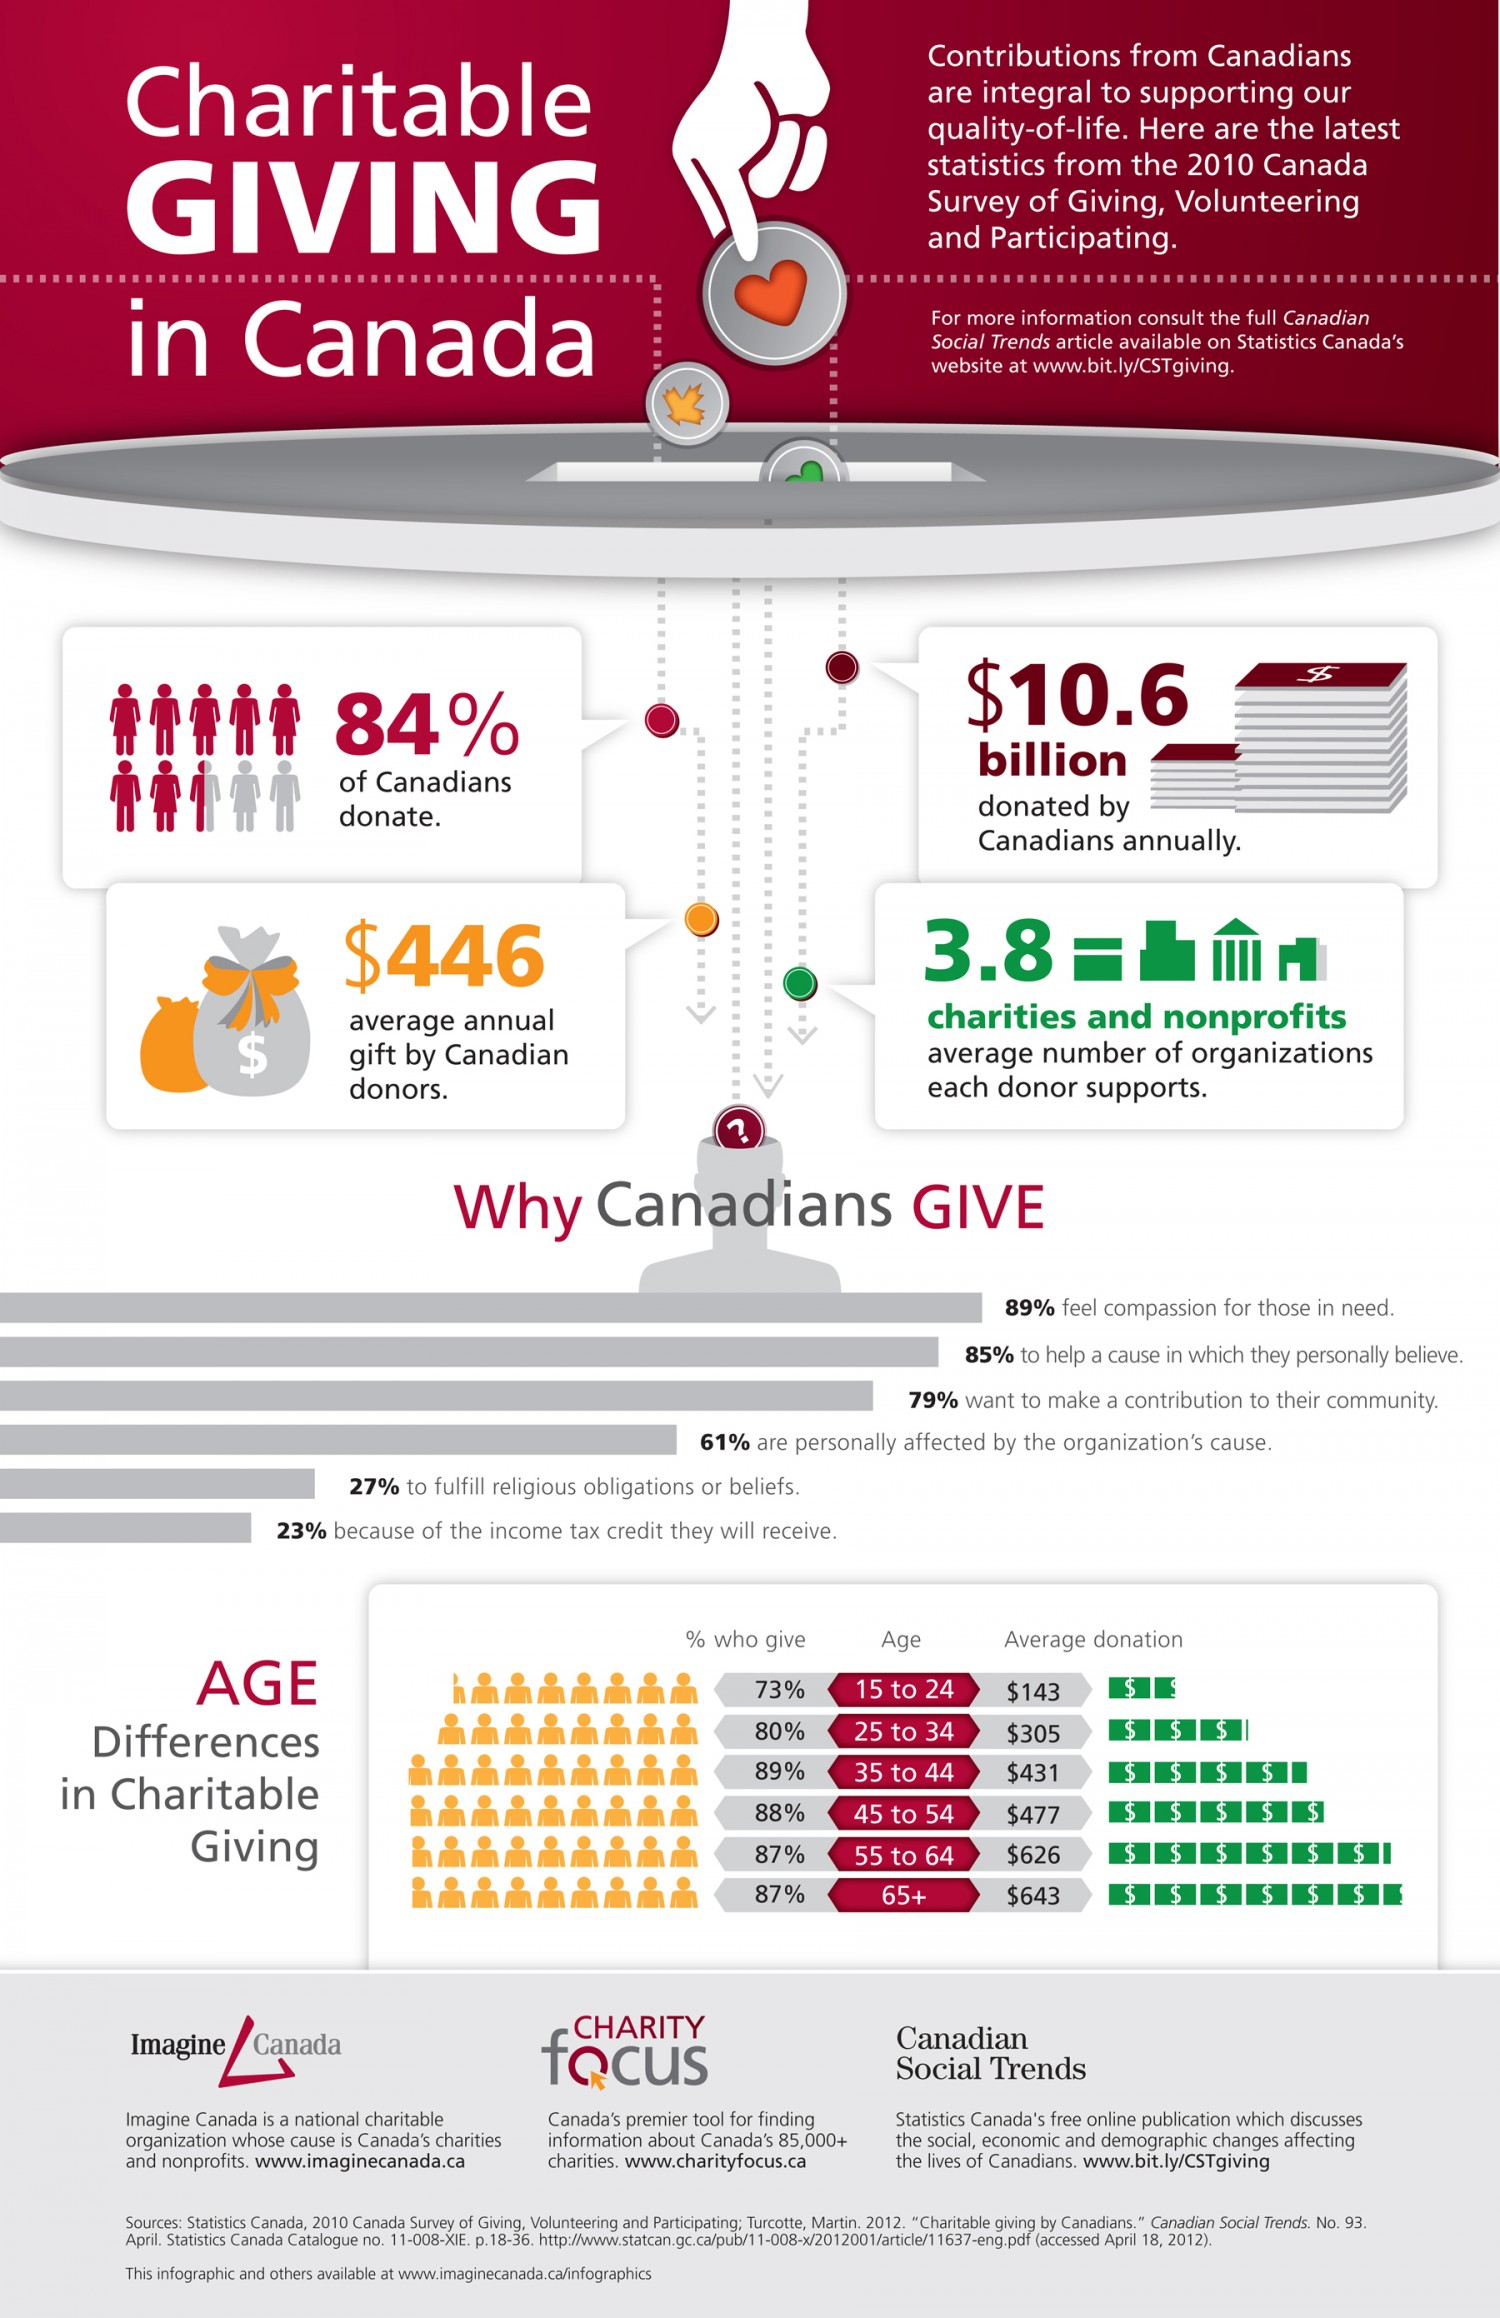 11. Charitable Giving in Canada